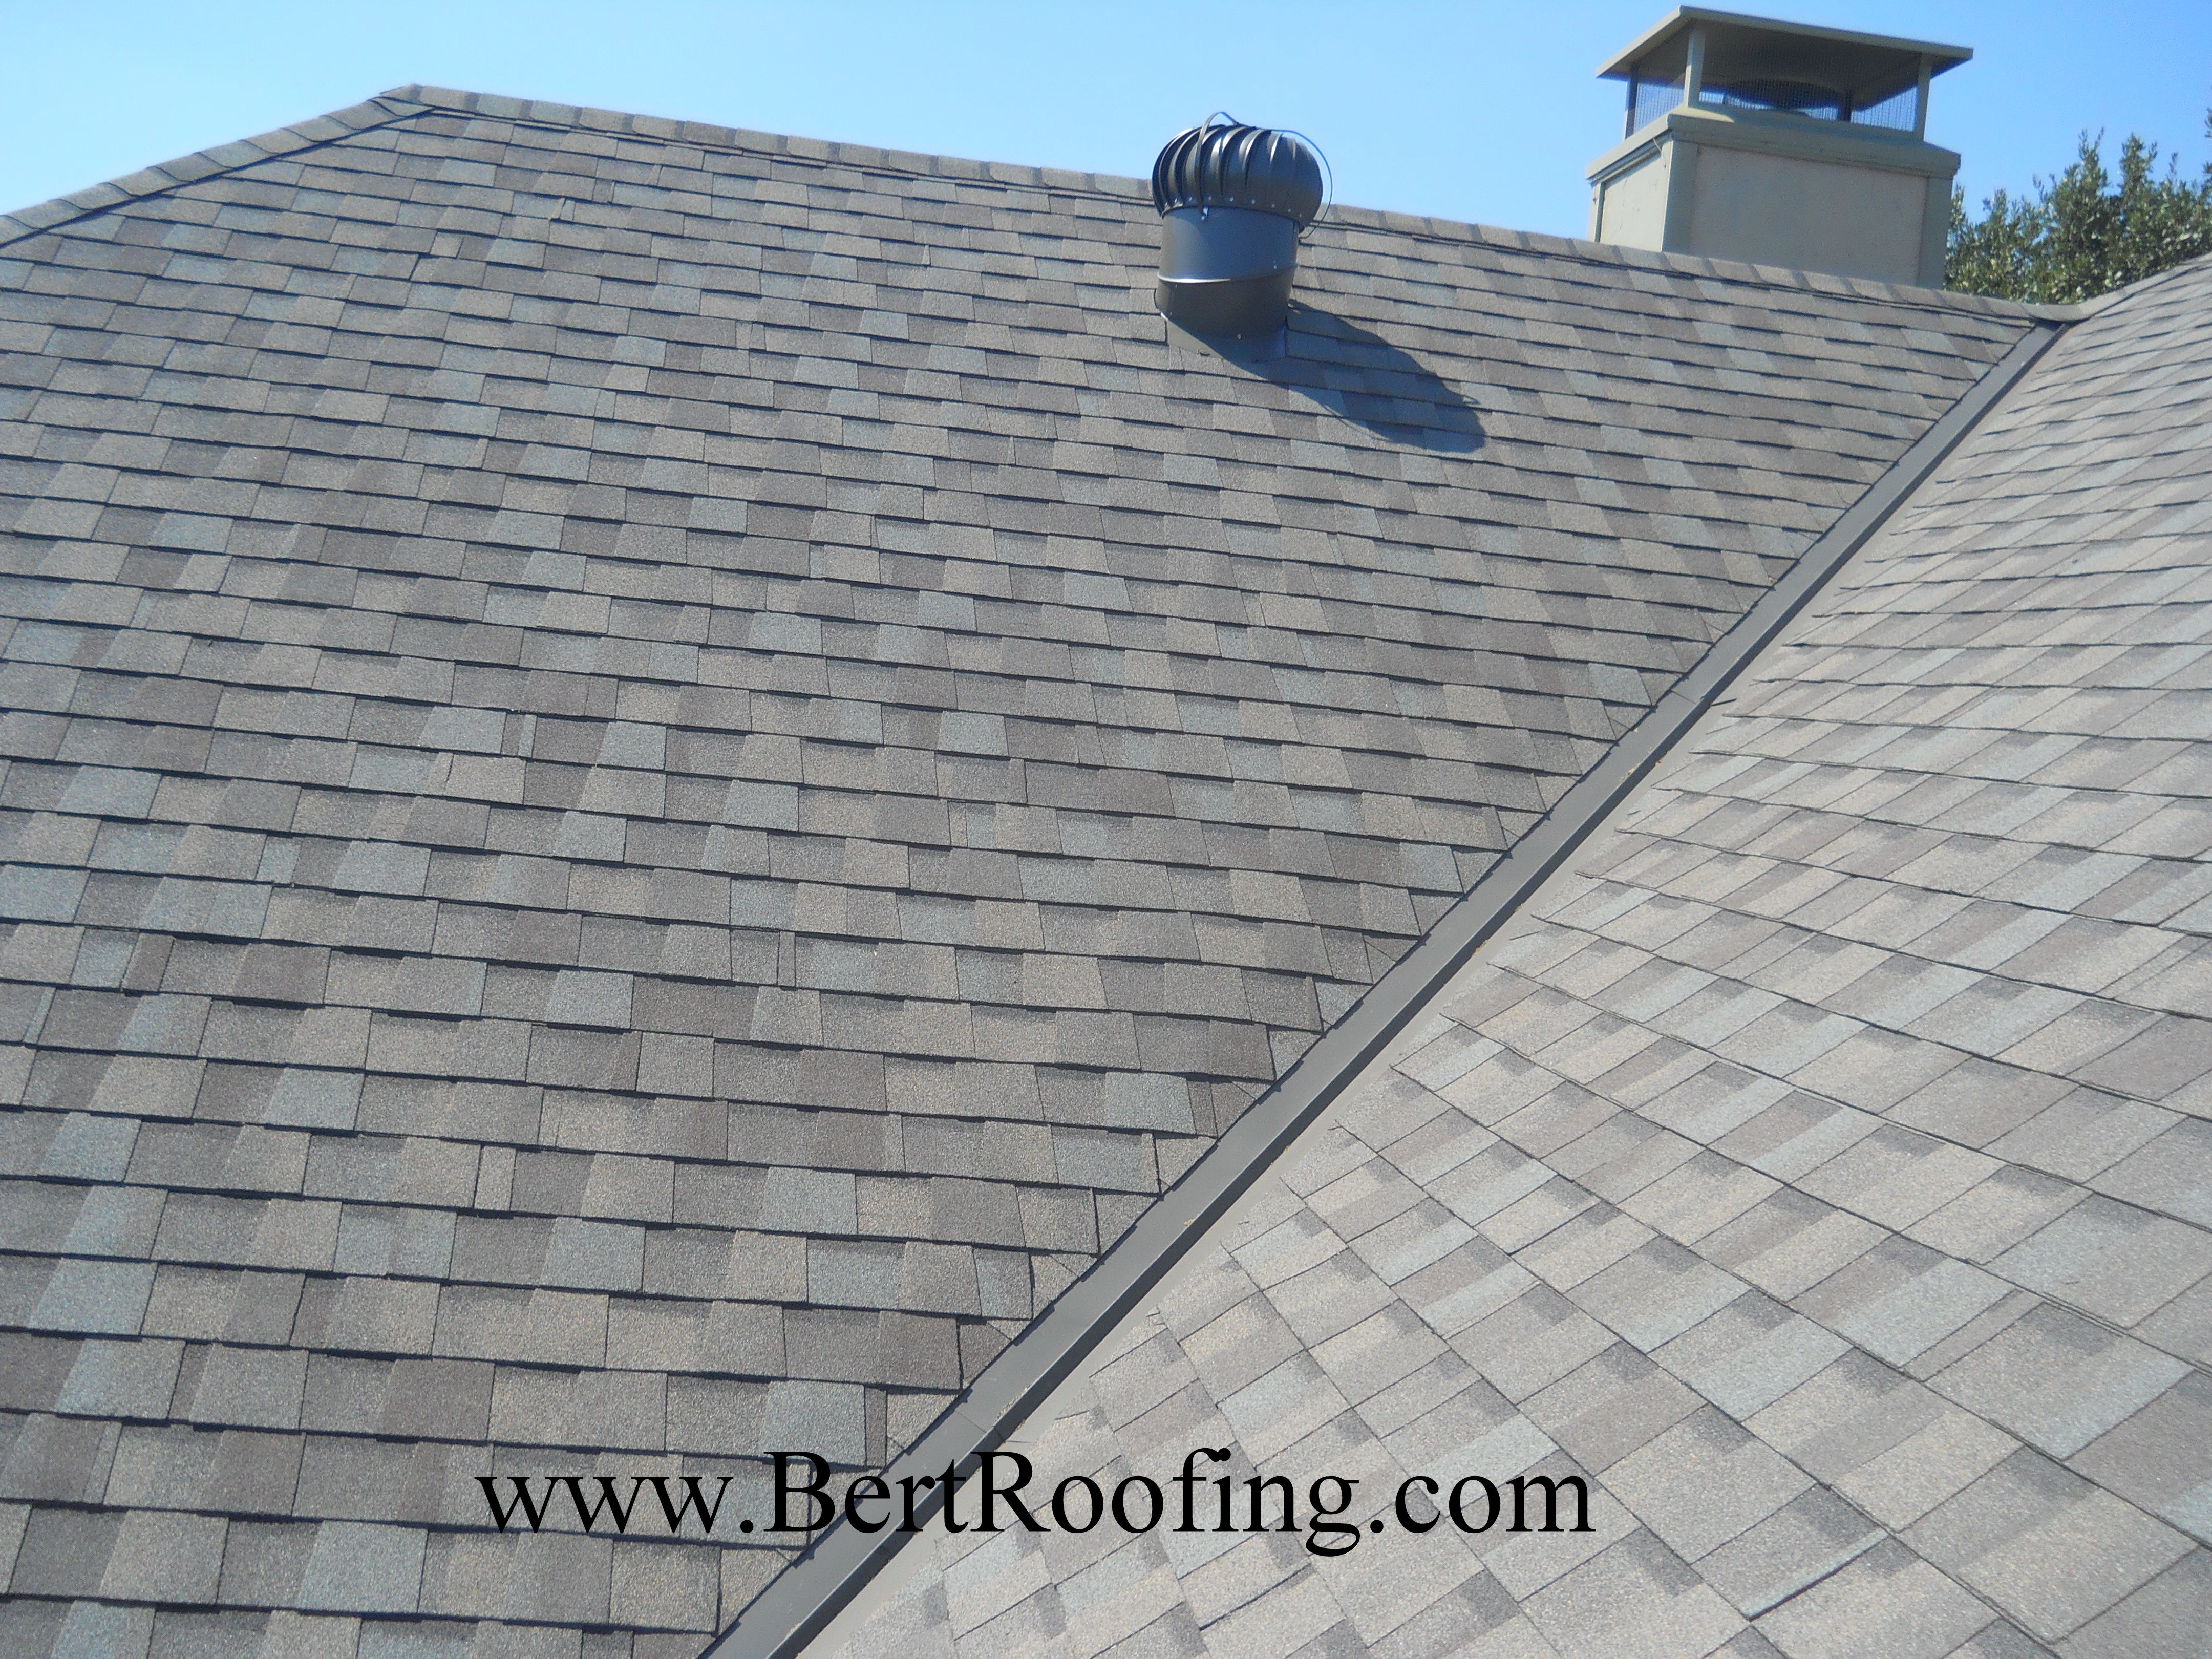 Dallas Roofing Company Bert Roofing Dallas Roofing Contractor